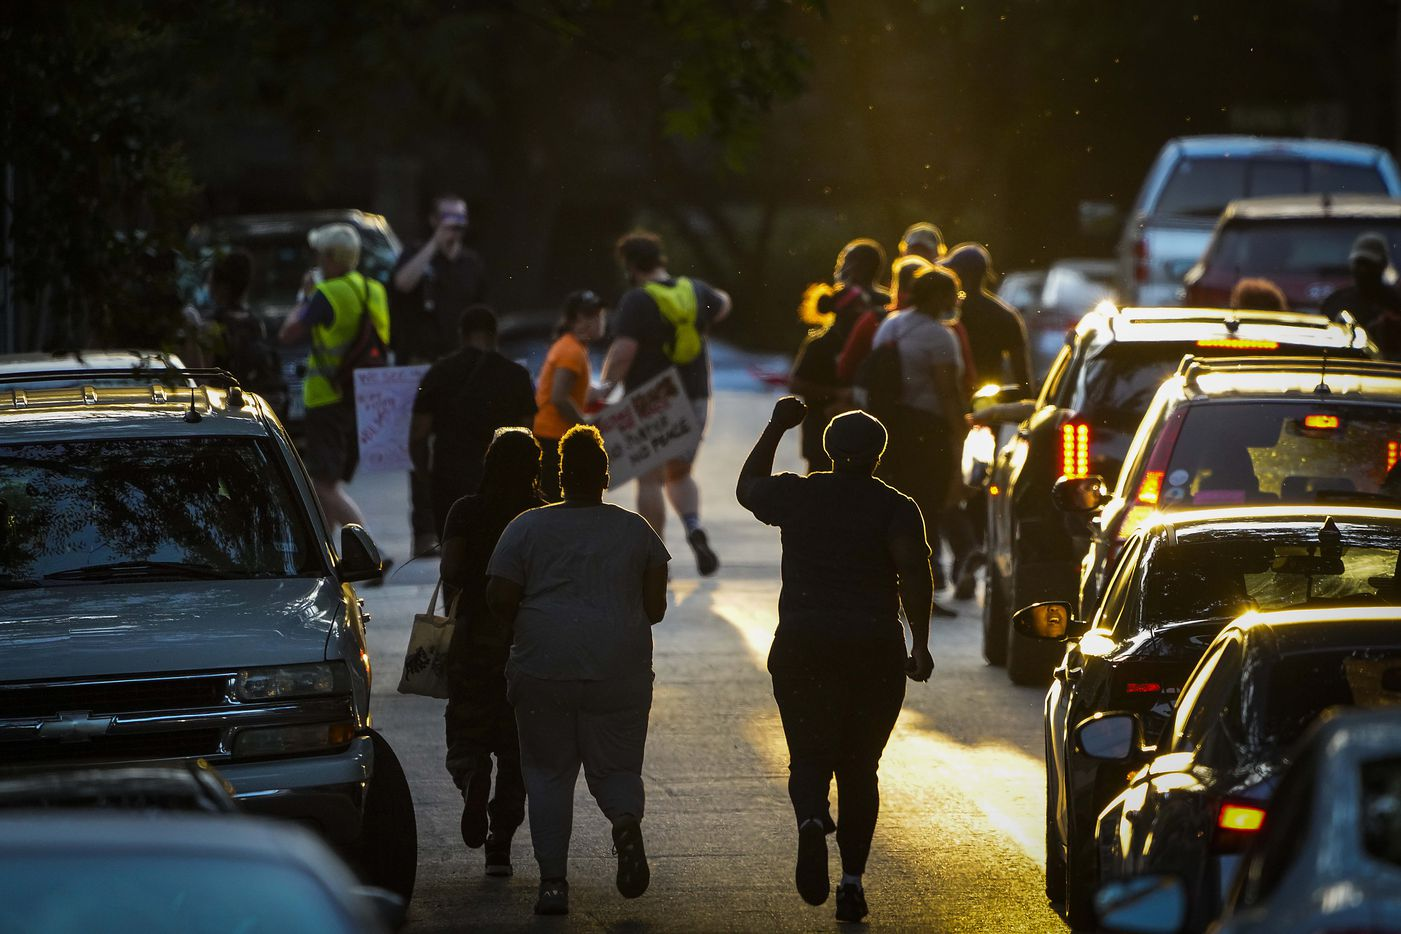 Marchers head down Elizabeth Street during a protest at Cole Park on Friday, June 5, 2020, in Dallas. Protests continued Friday in the response to the death of George Floyd.